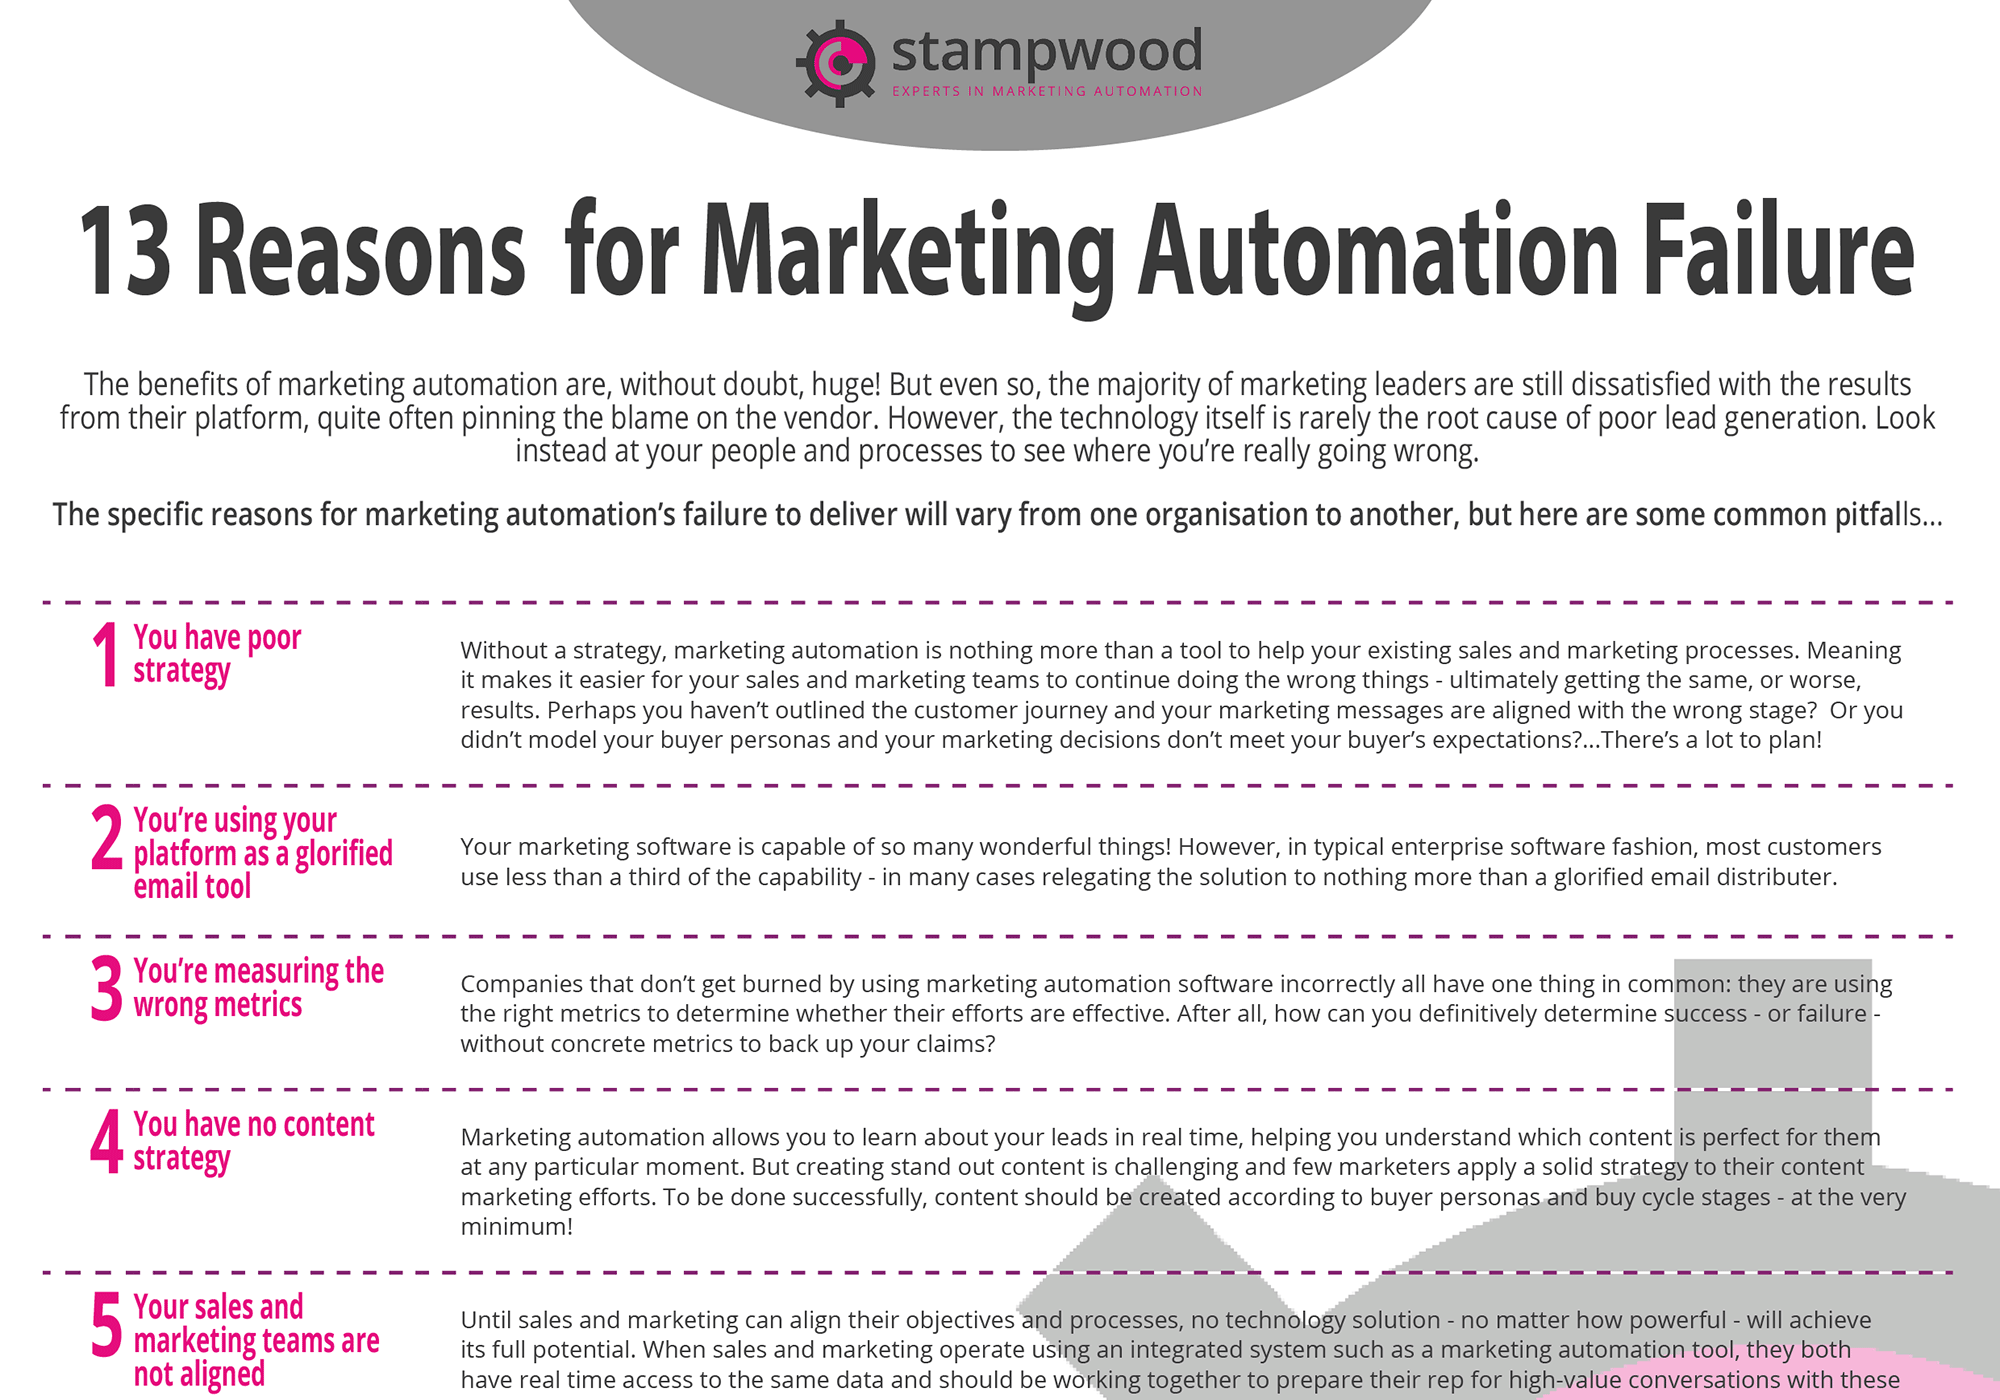 13-reasons-for-marketing-automation-failure-fact-sheet-front-page